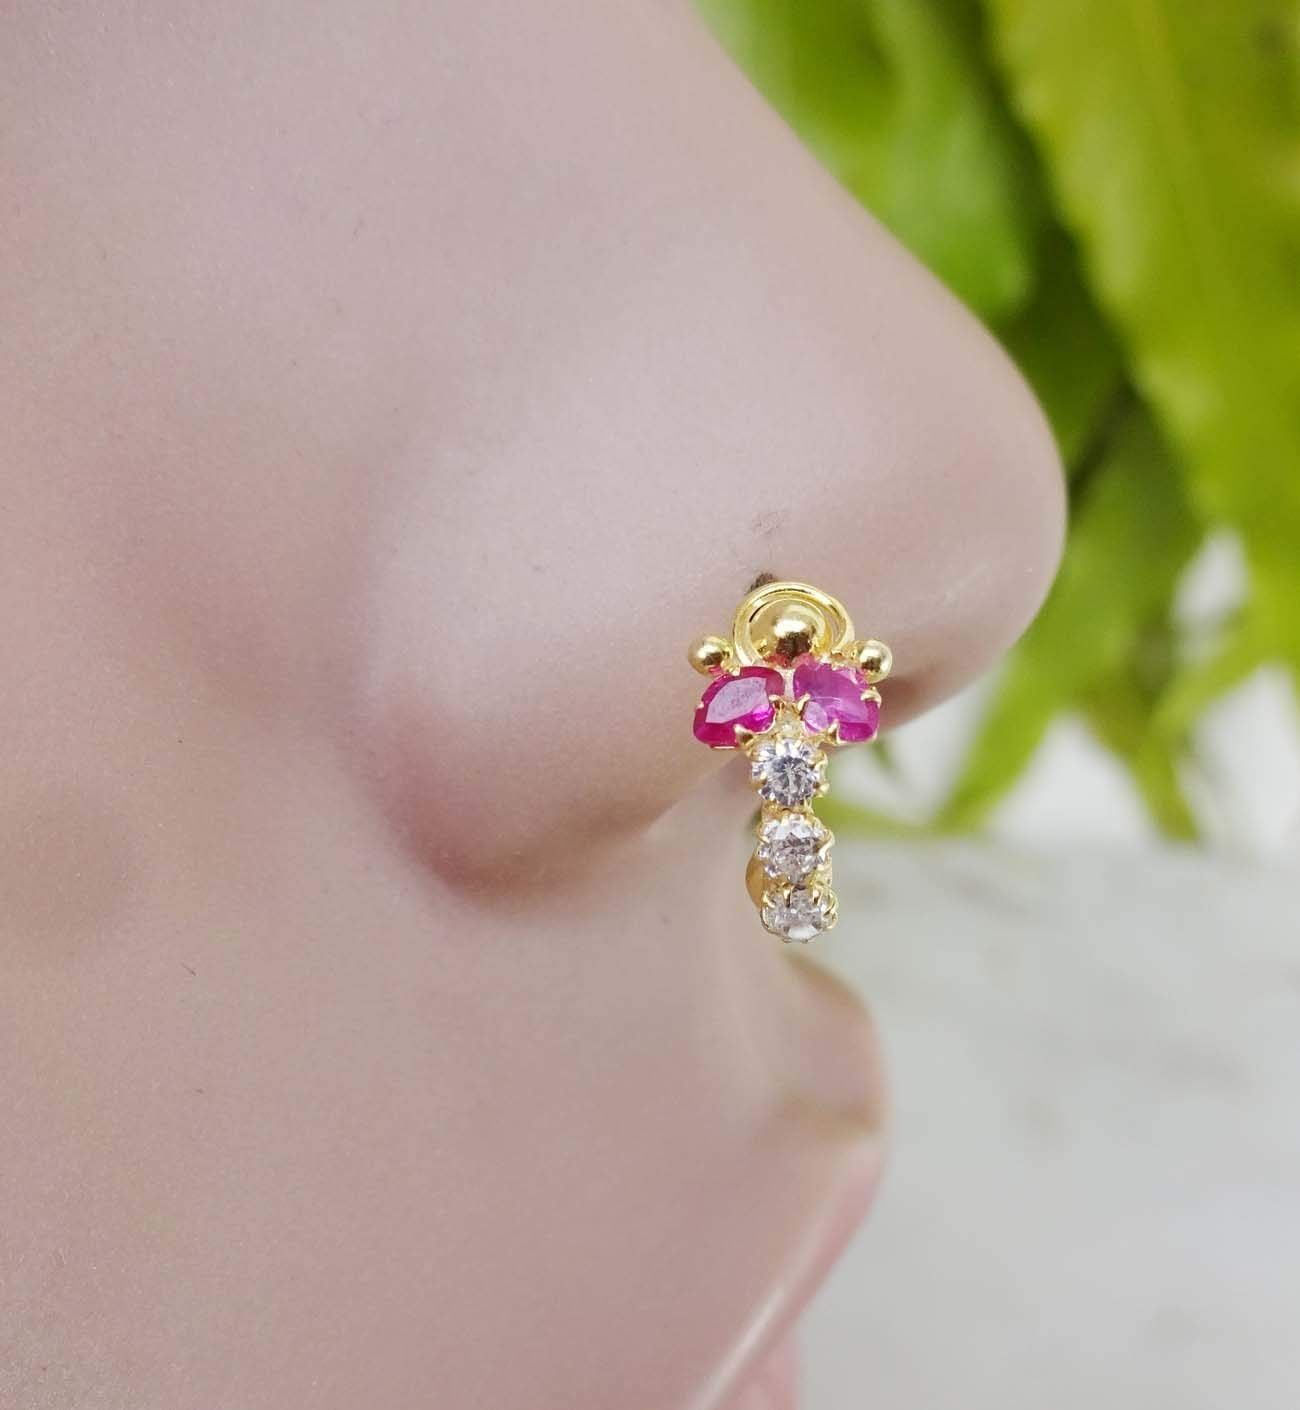 Cheap Diamond Nose Ring White Gold Find Diamond Nose Ring White